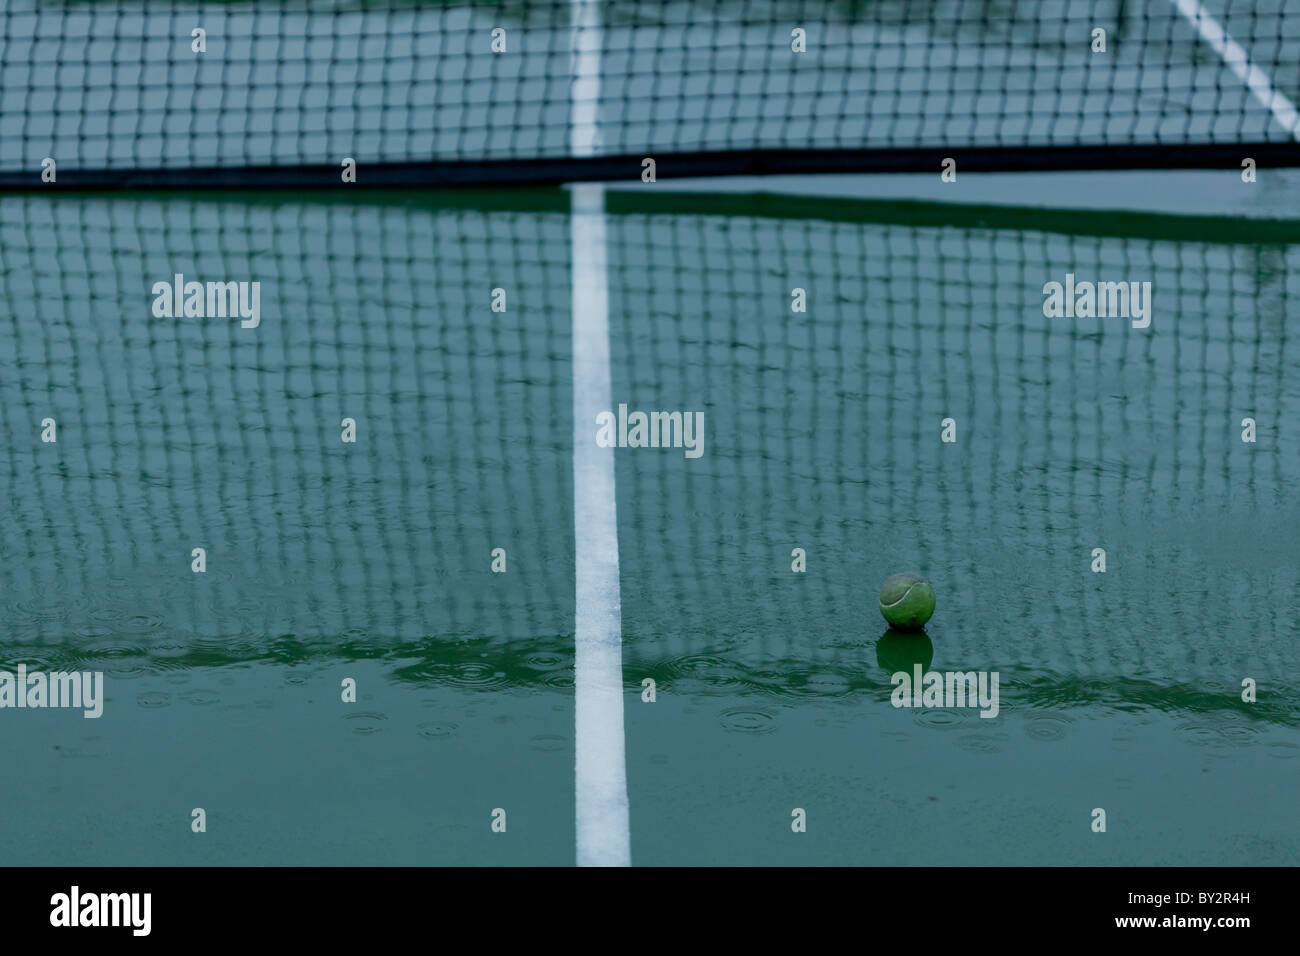 Home tennis ball on the court during a rainy day. - Stock Image